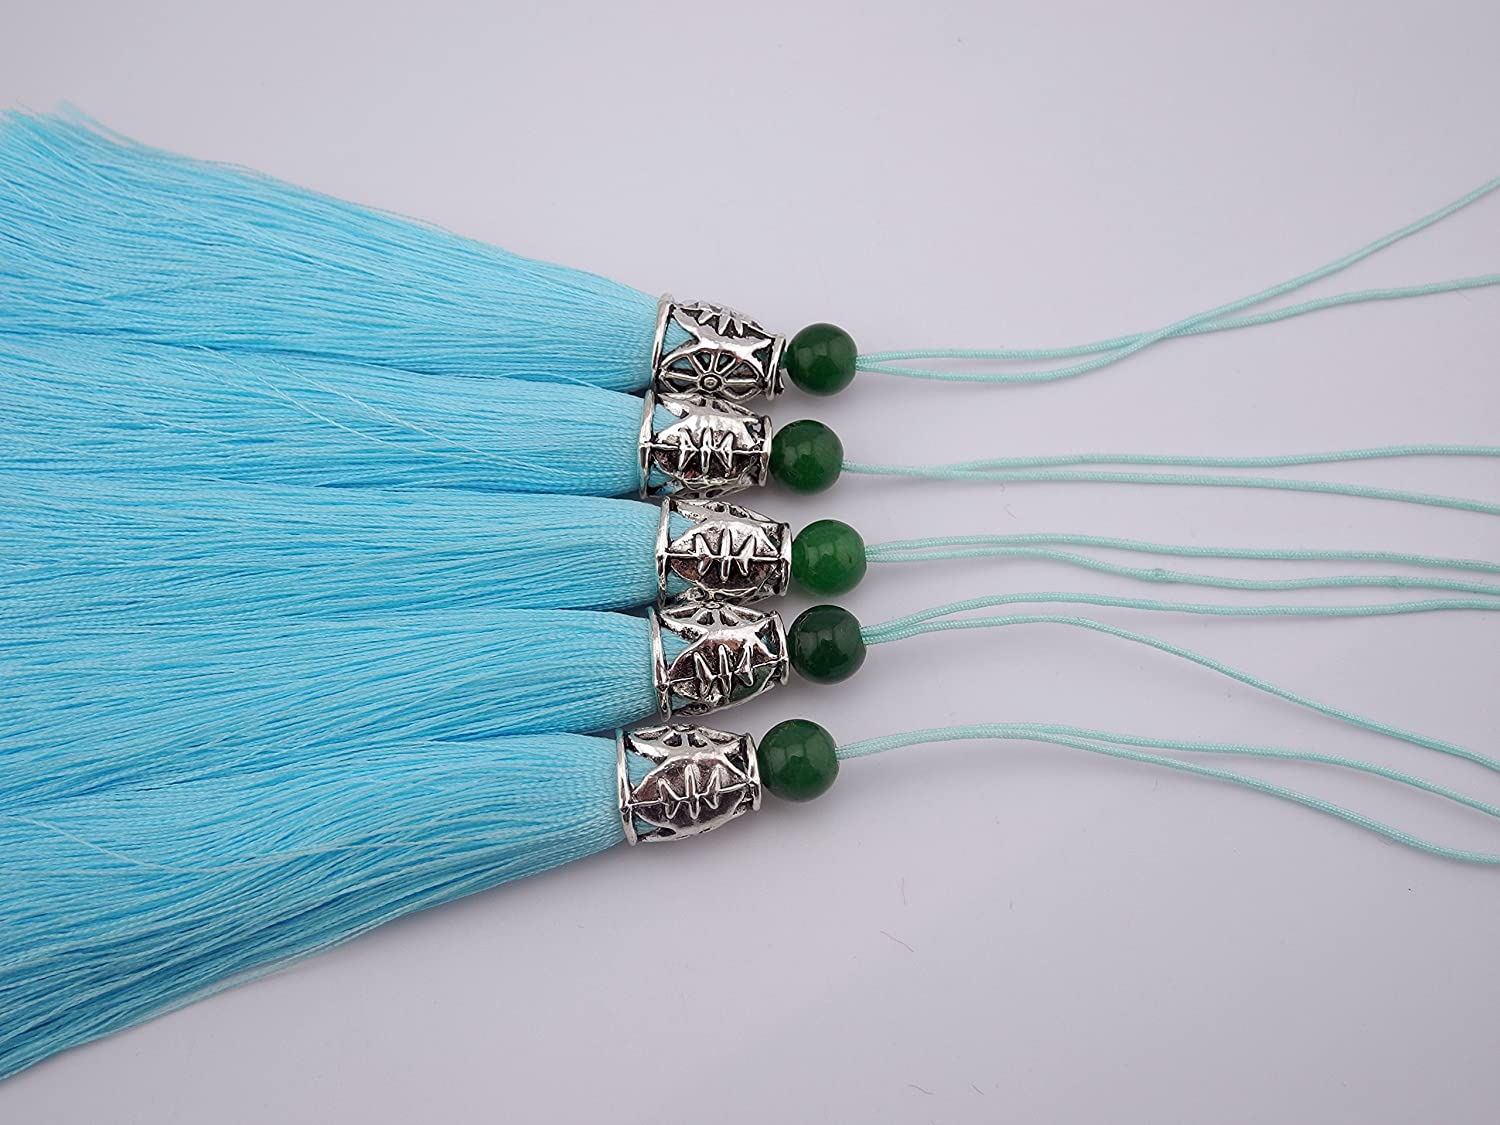 10pcs 3.6''(9.0cm) Soft Silk Tassels for Jewelry with Hollowed Antique Silver Cap and Jade Beads (Royal Blue) Sansam